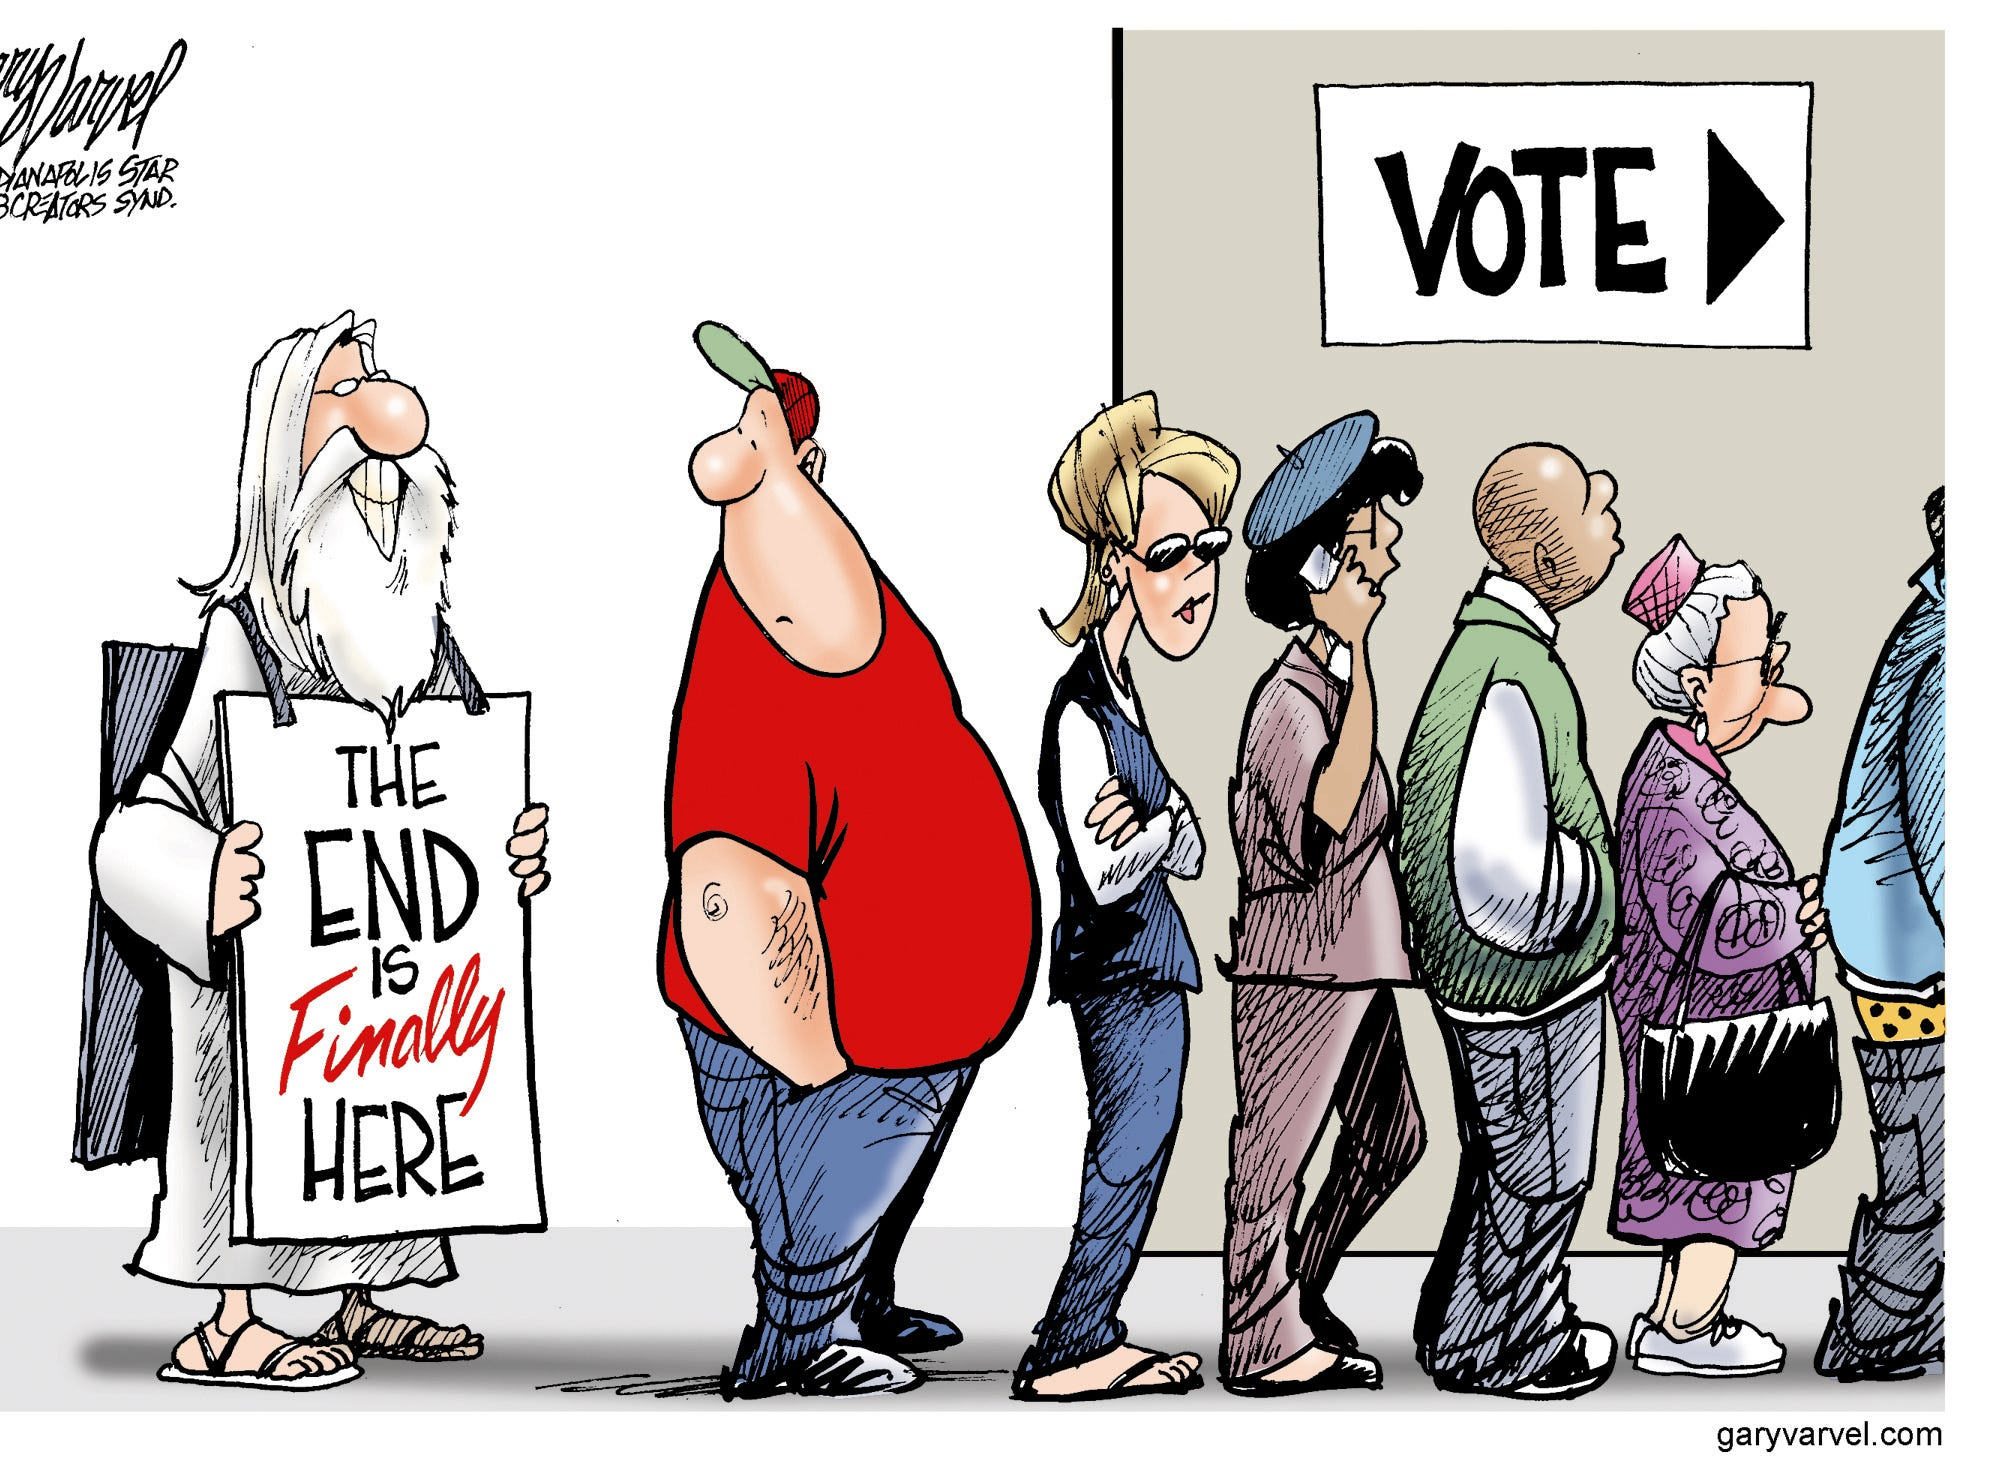 Voters are happy to see the end of the campaign.